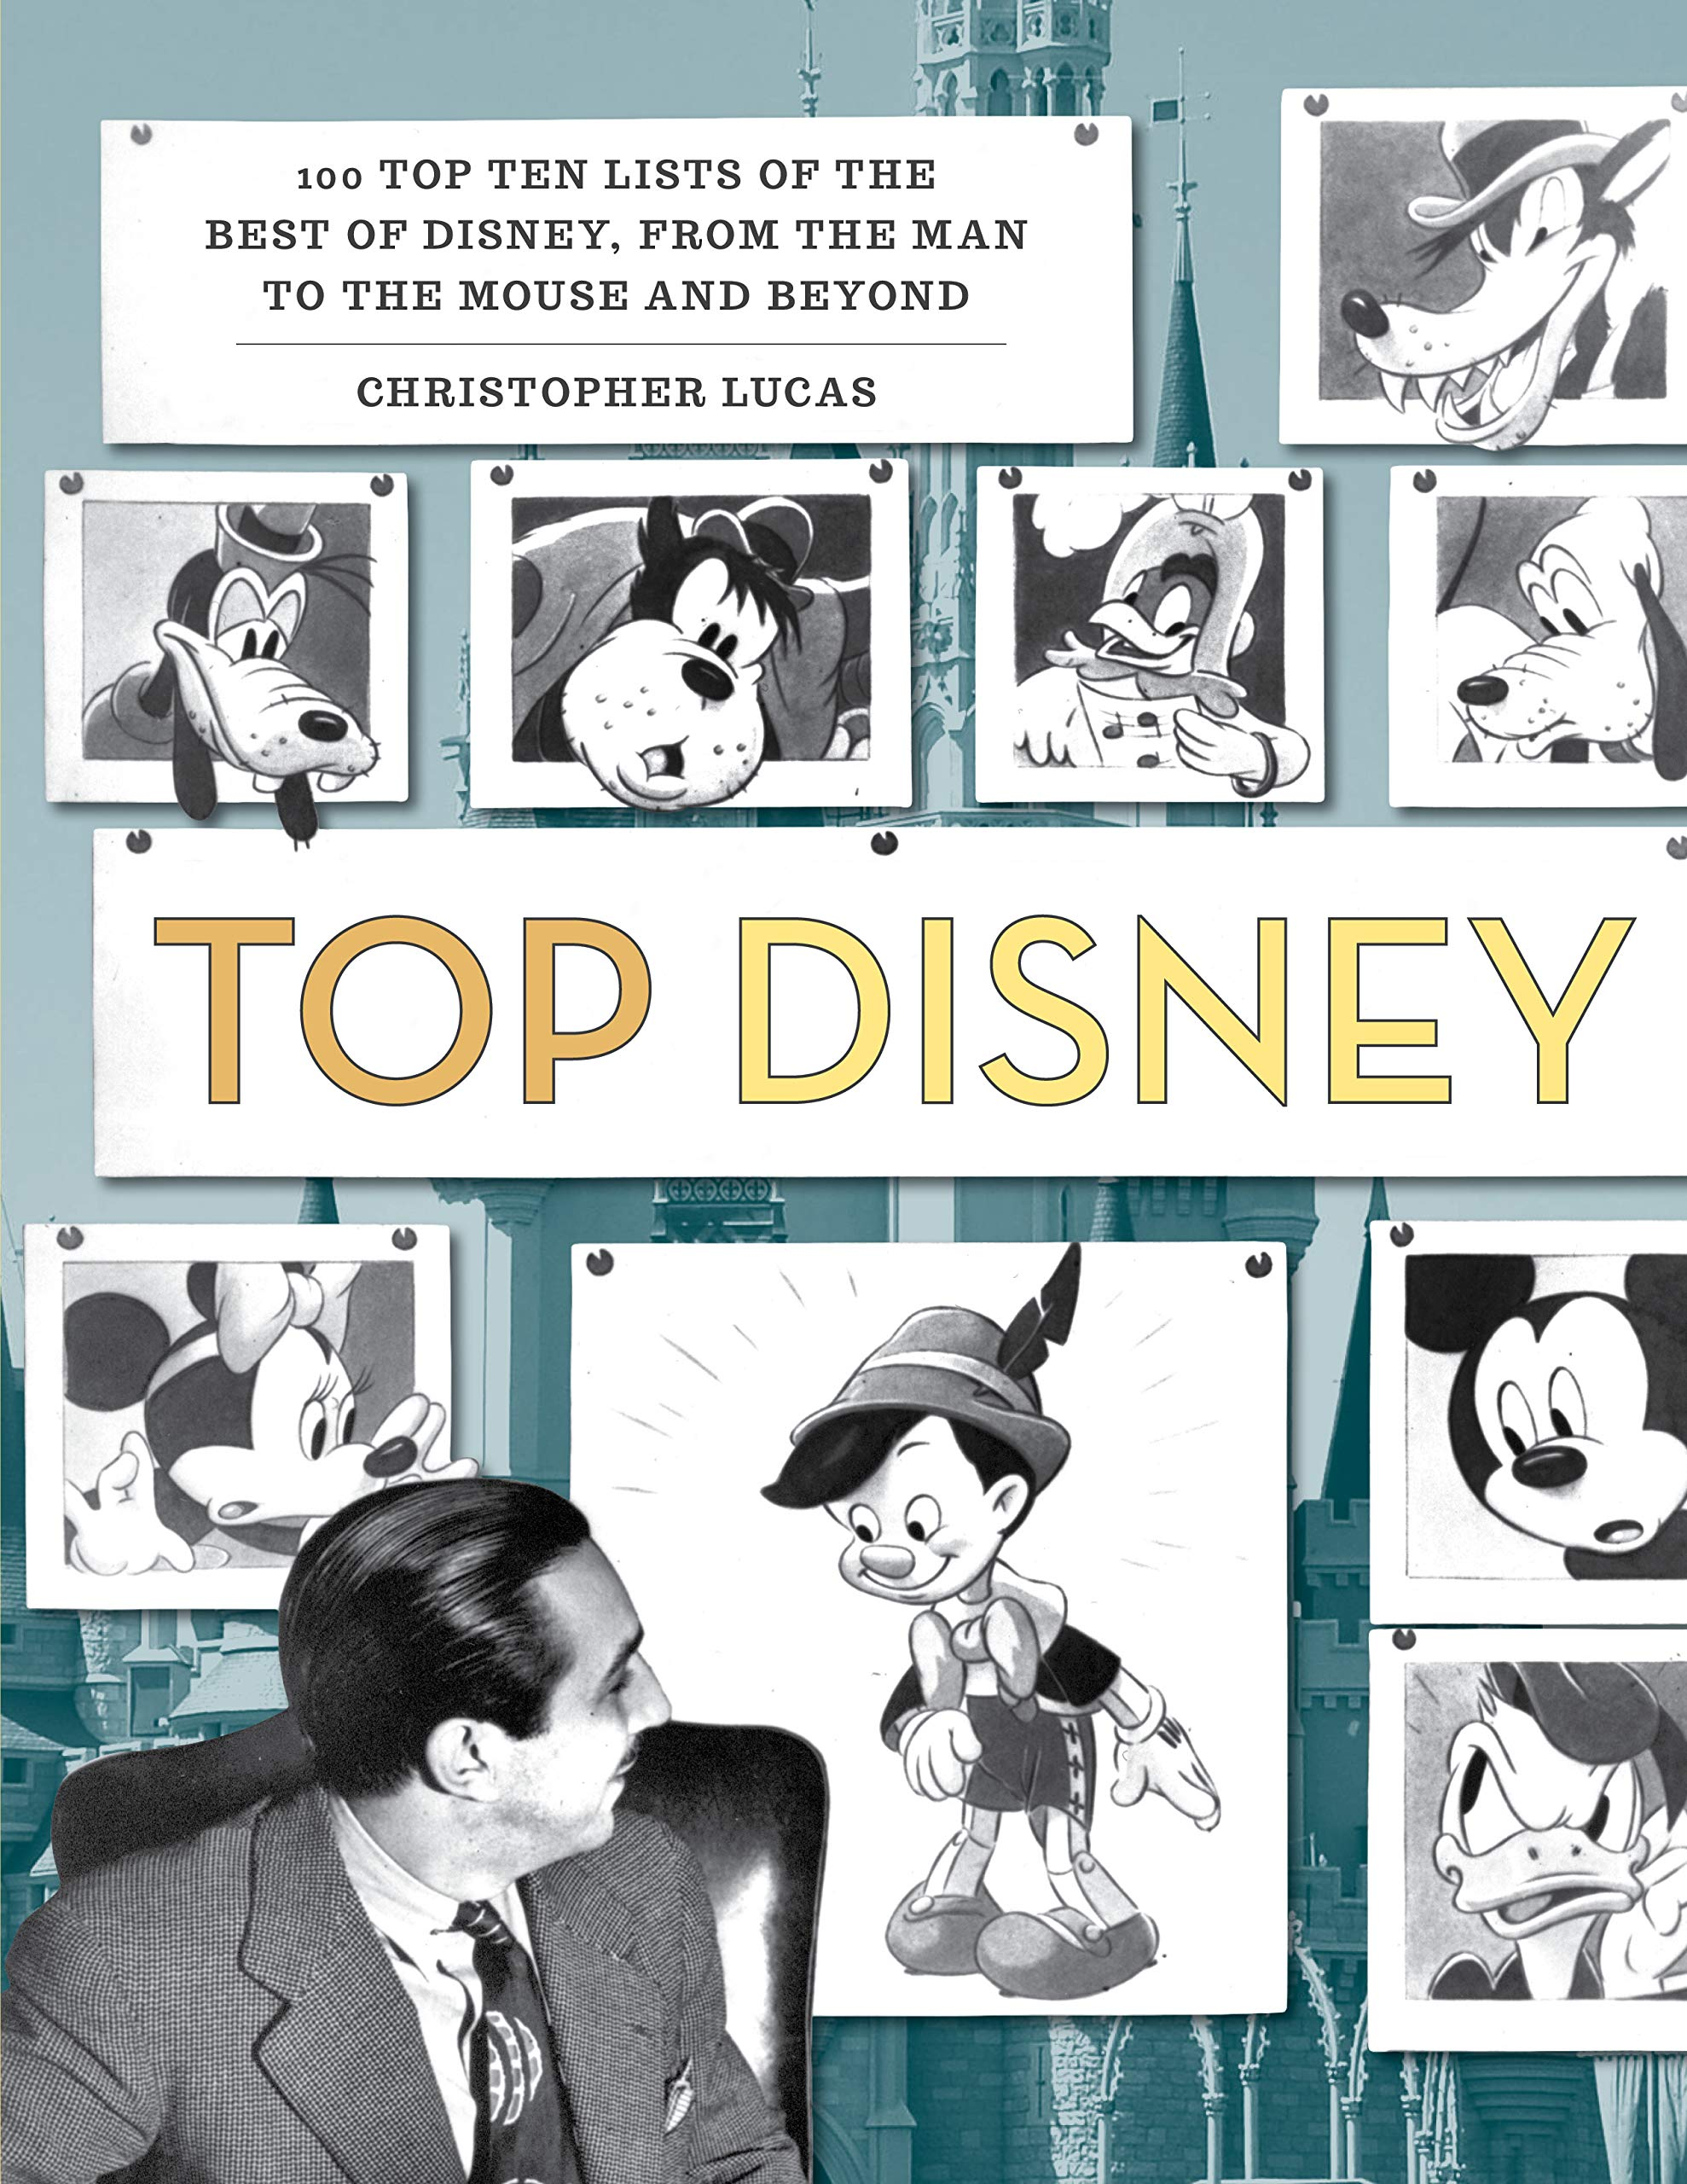 Top Disney: 100 Top Ten Lists of the Best of Disney, from